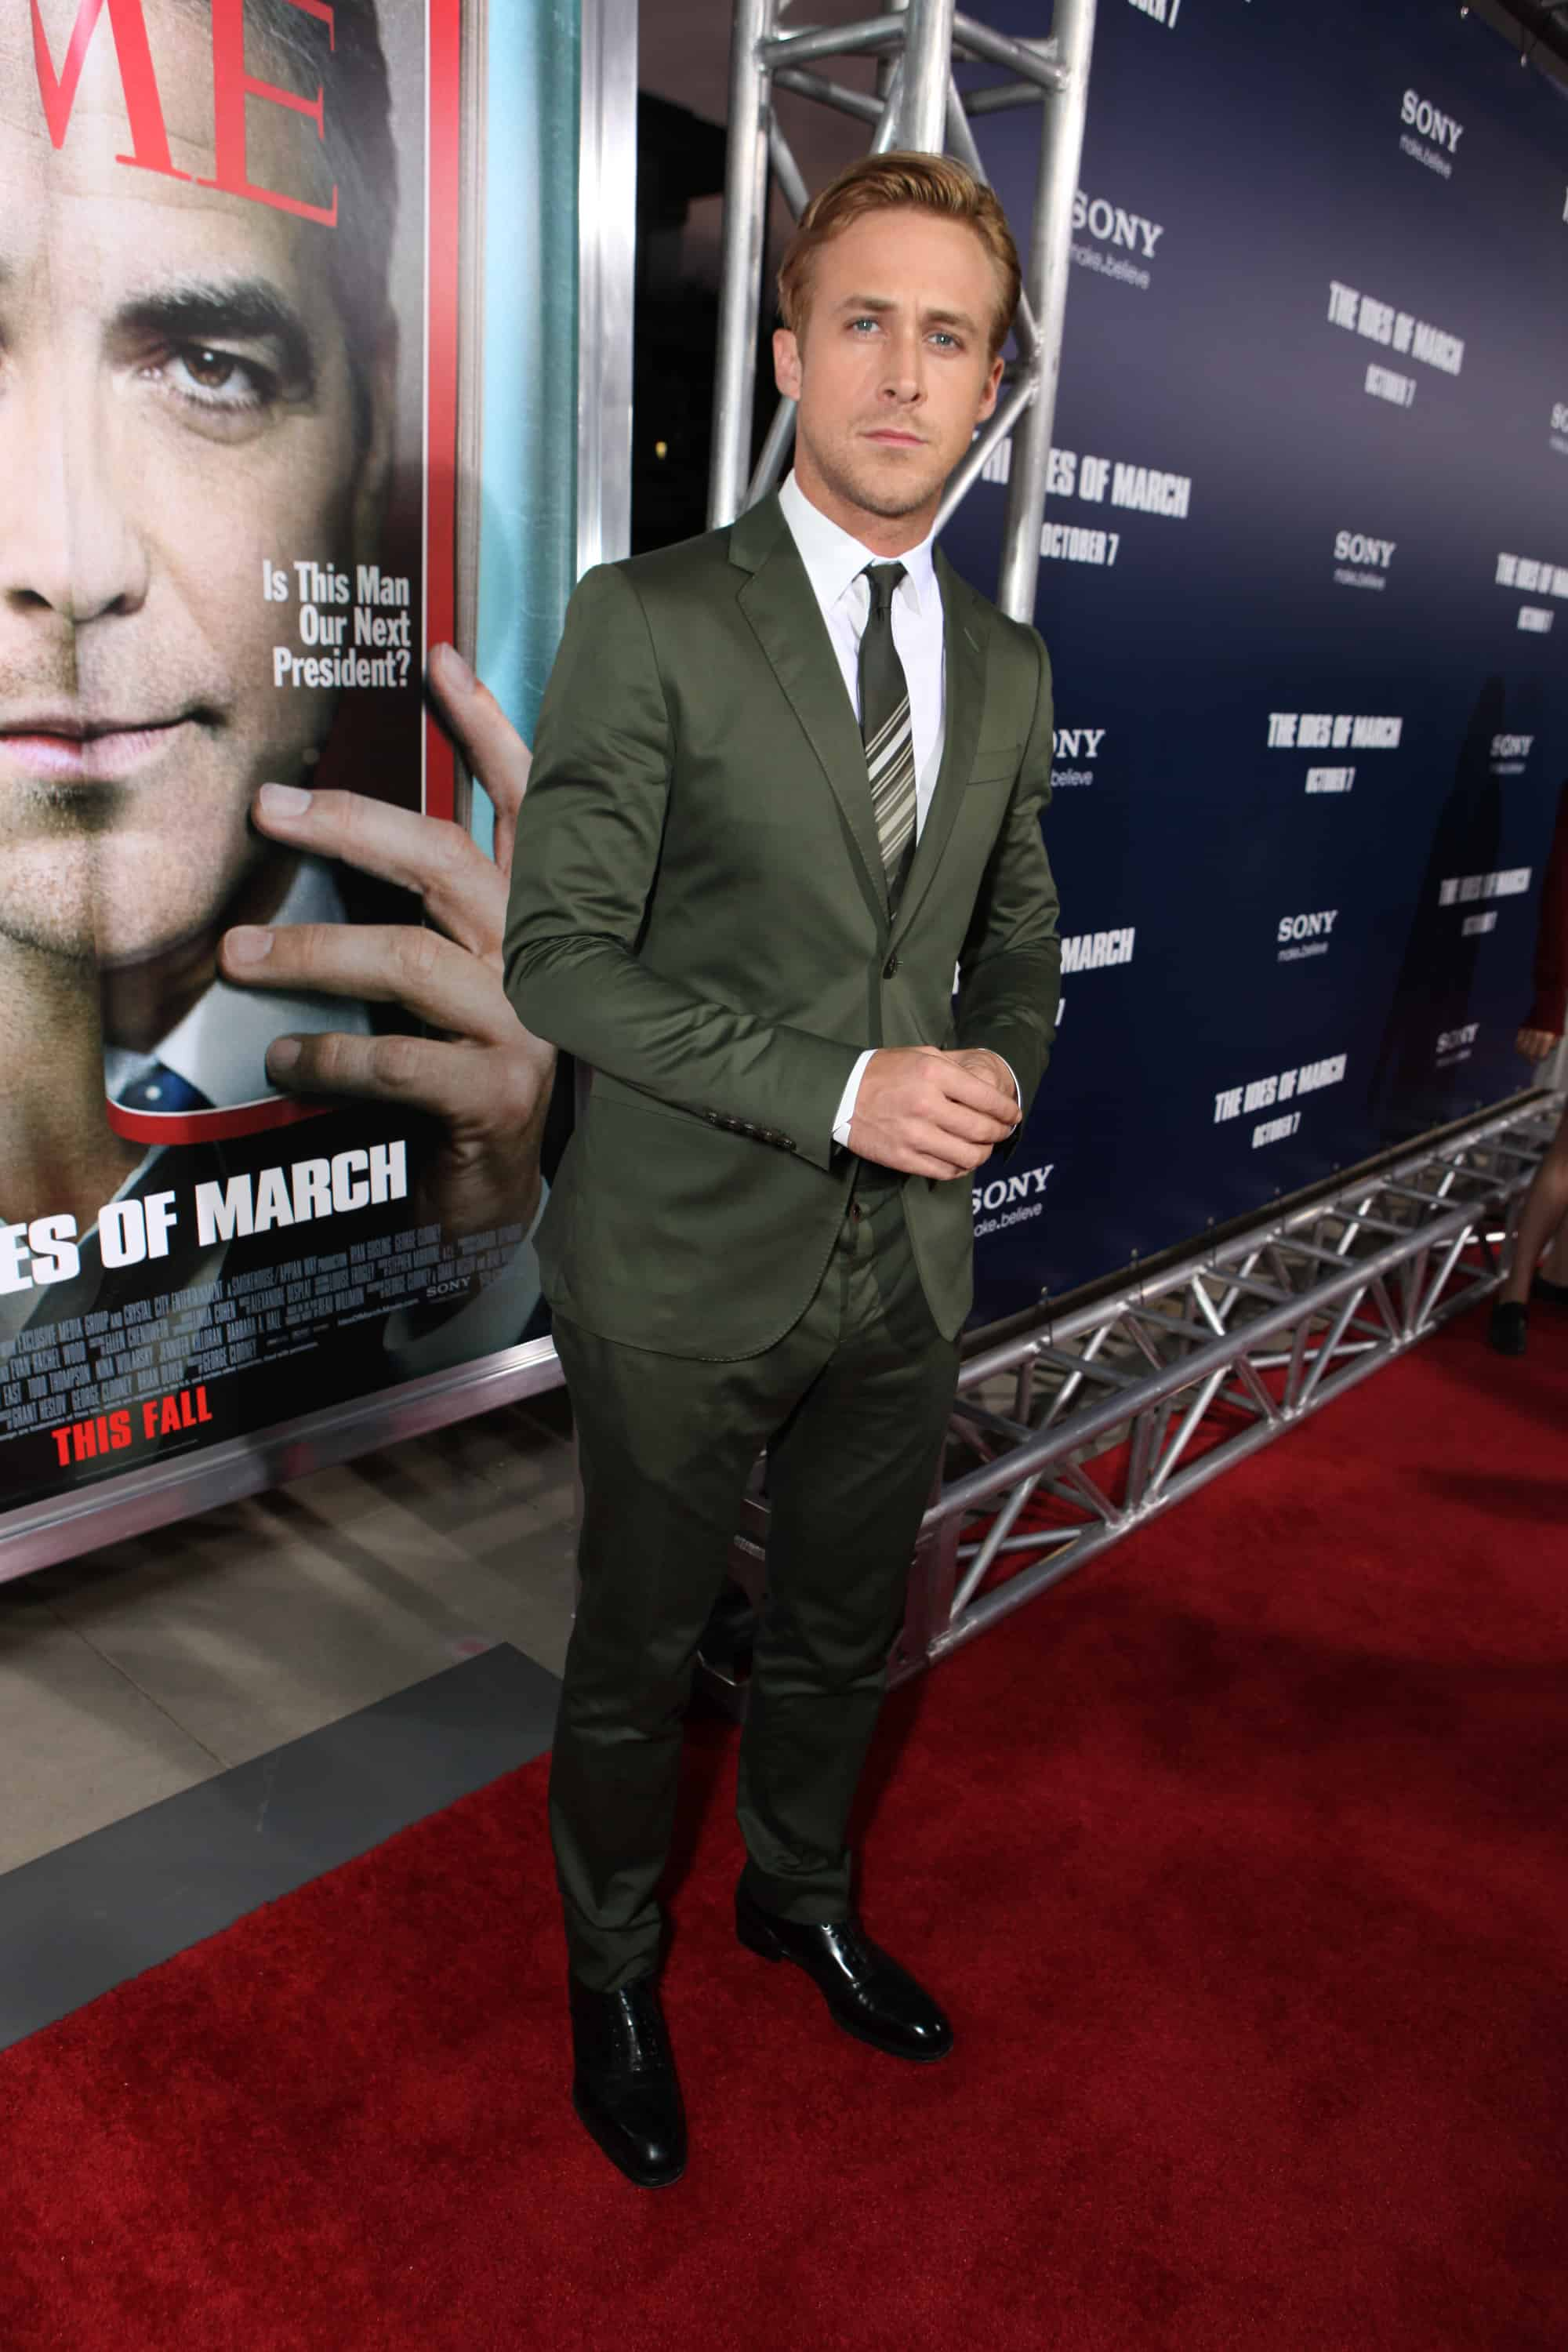 Ryan Gosling Suit Ides-of-march-premiere-1.jpg